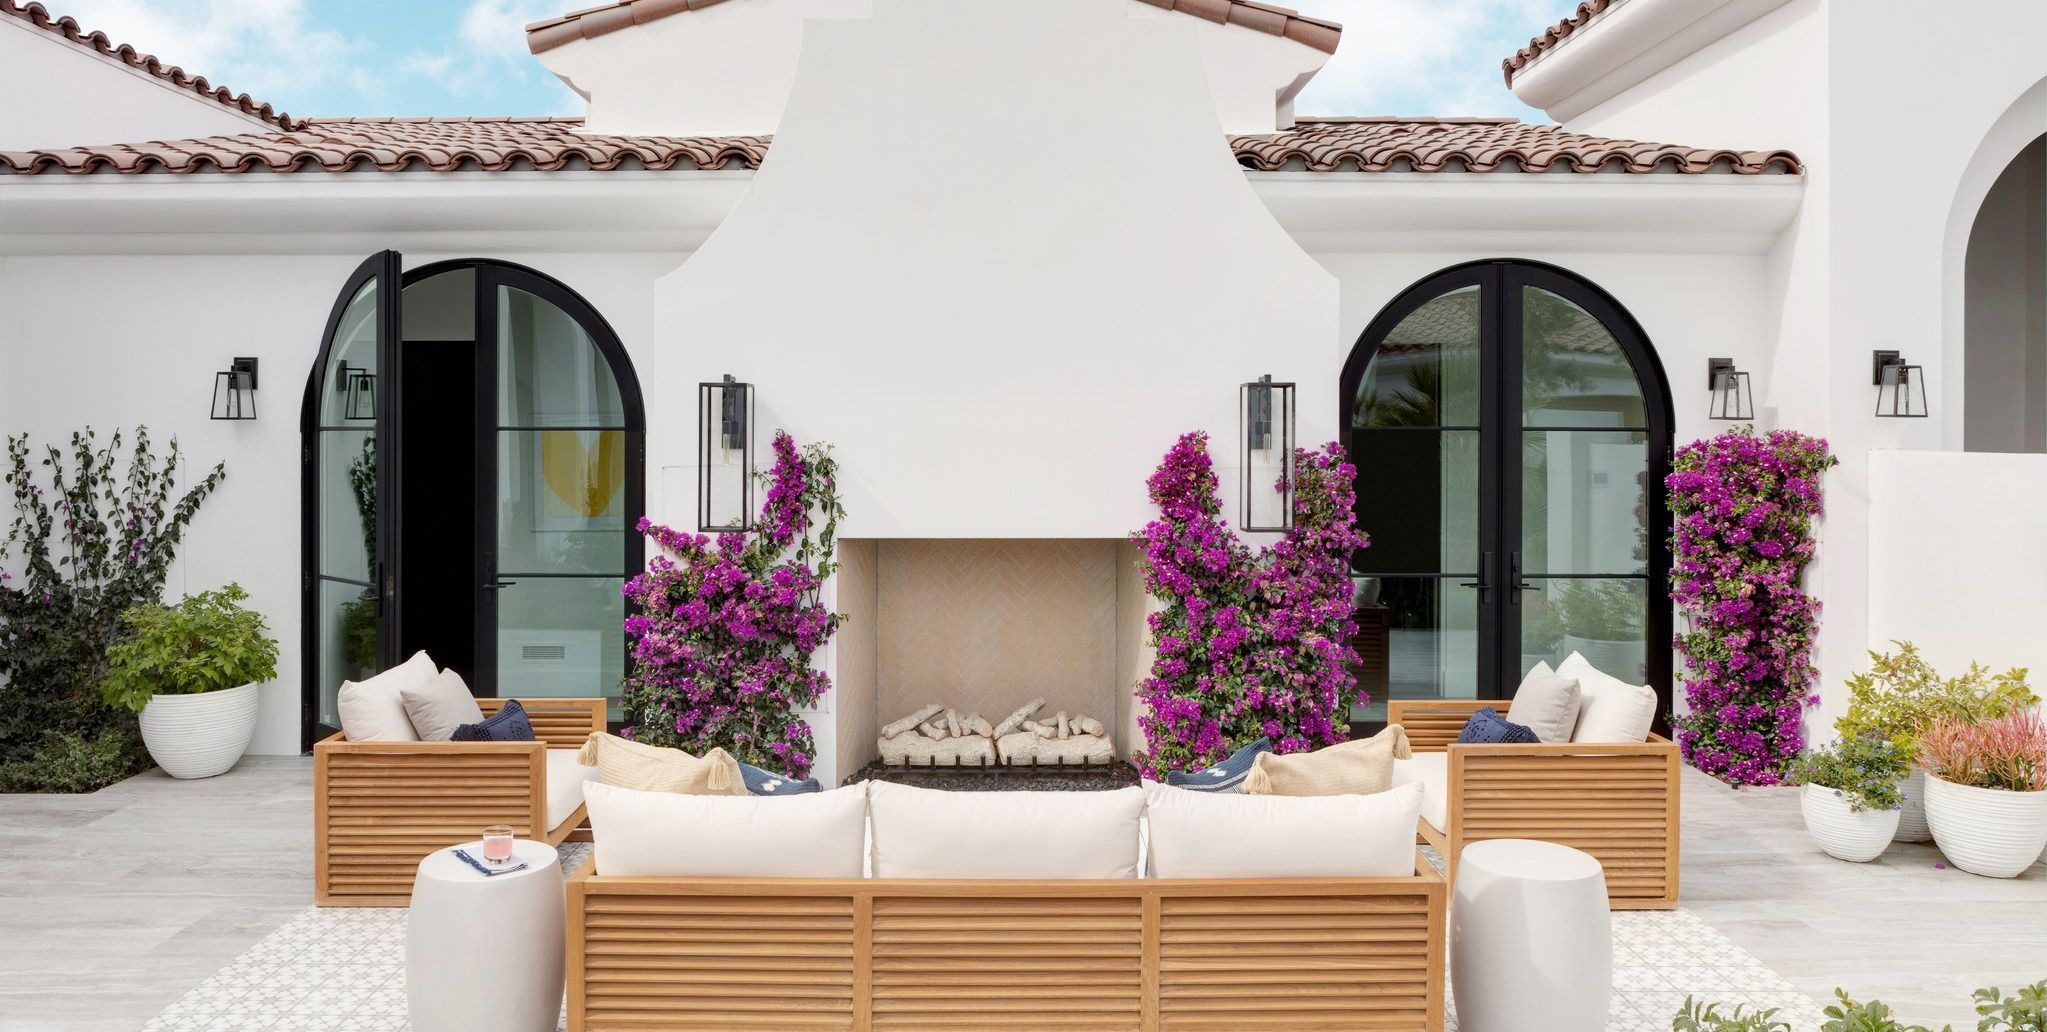 40 Chic Patio Ideas to Try in Your Backyard